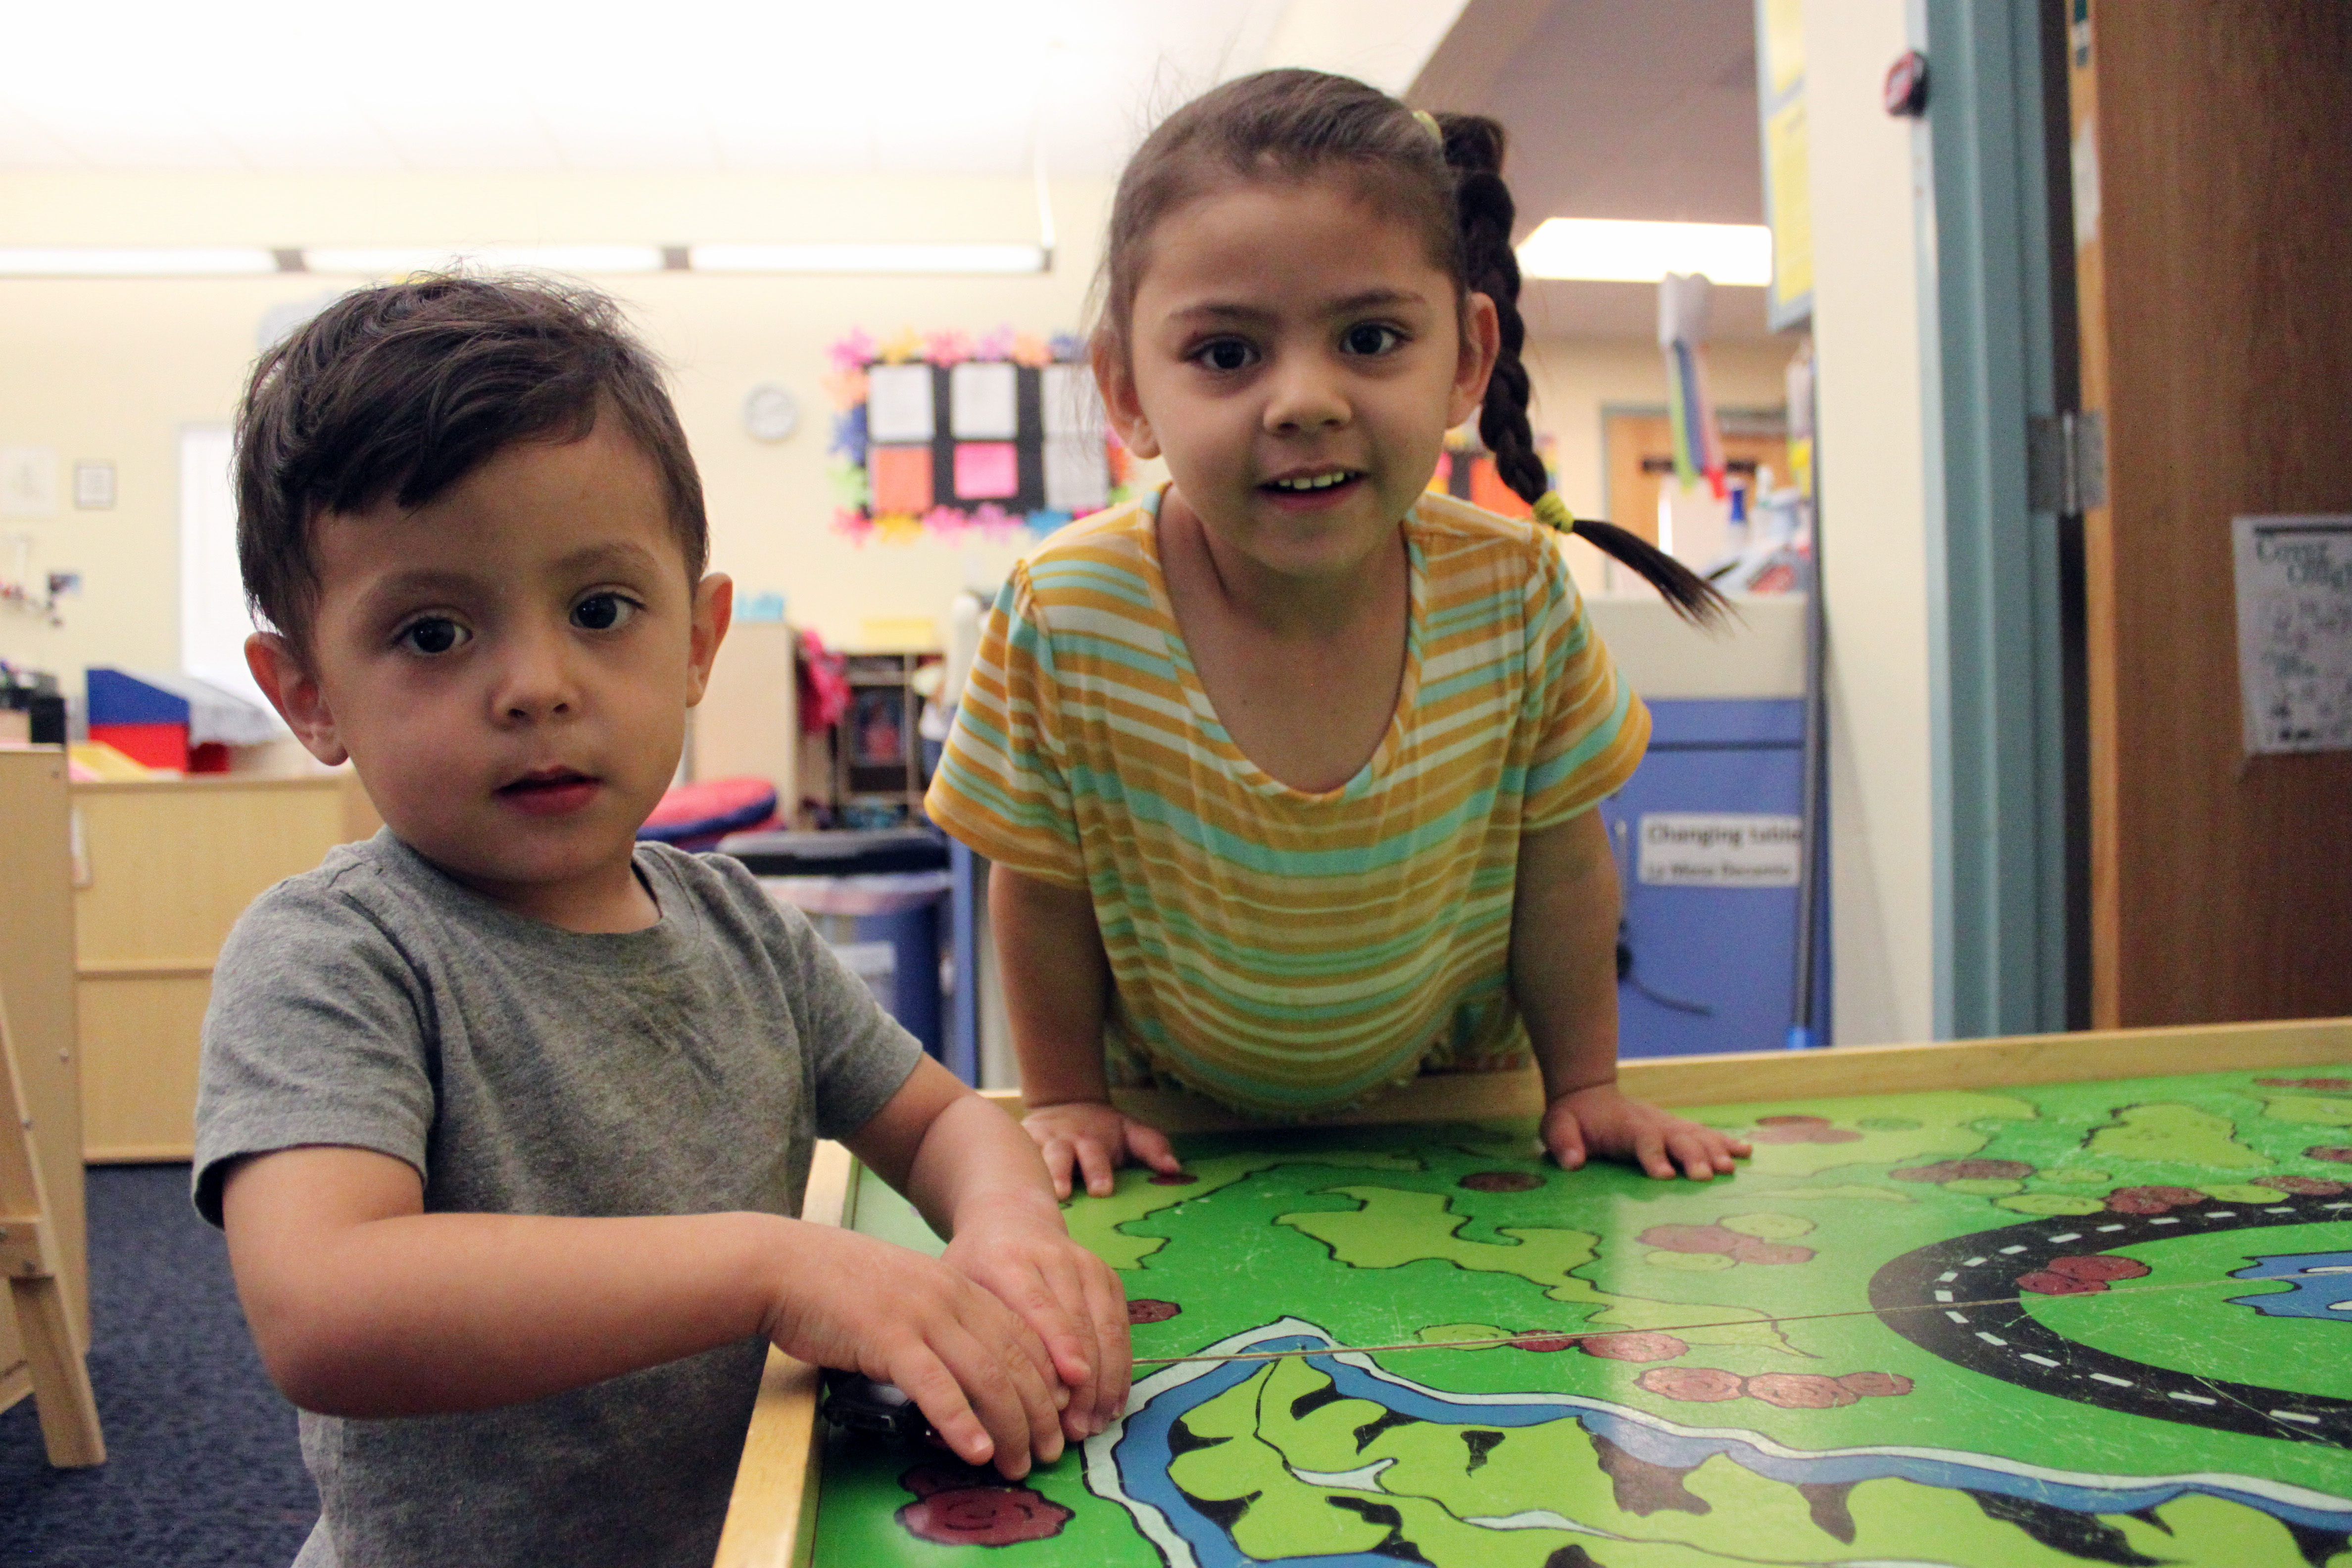 Arelyanna, 3, and Javier, 2, play with toy cars to at Cuidando Los Ninos in Albuquerque, N.M.